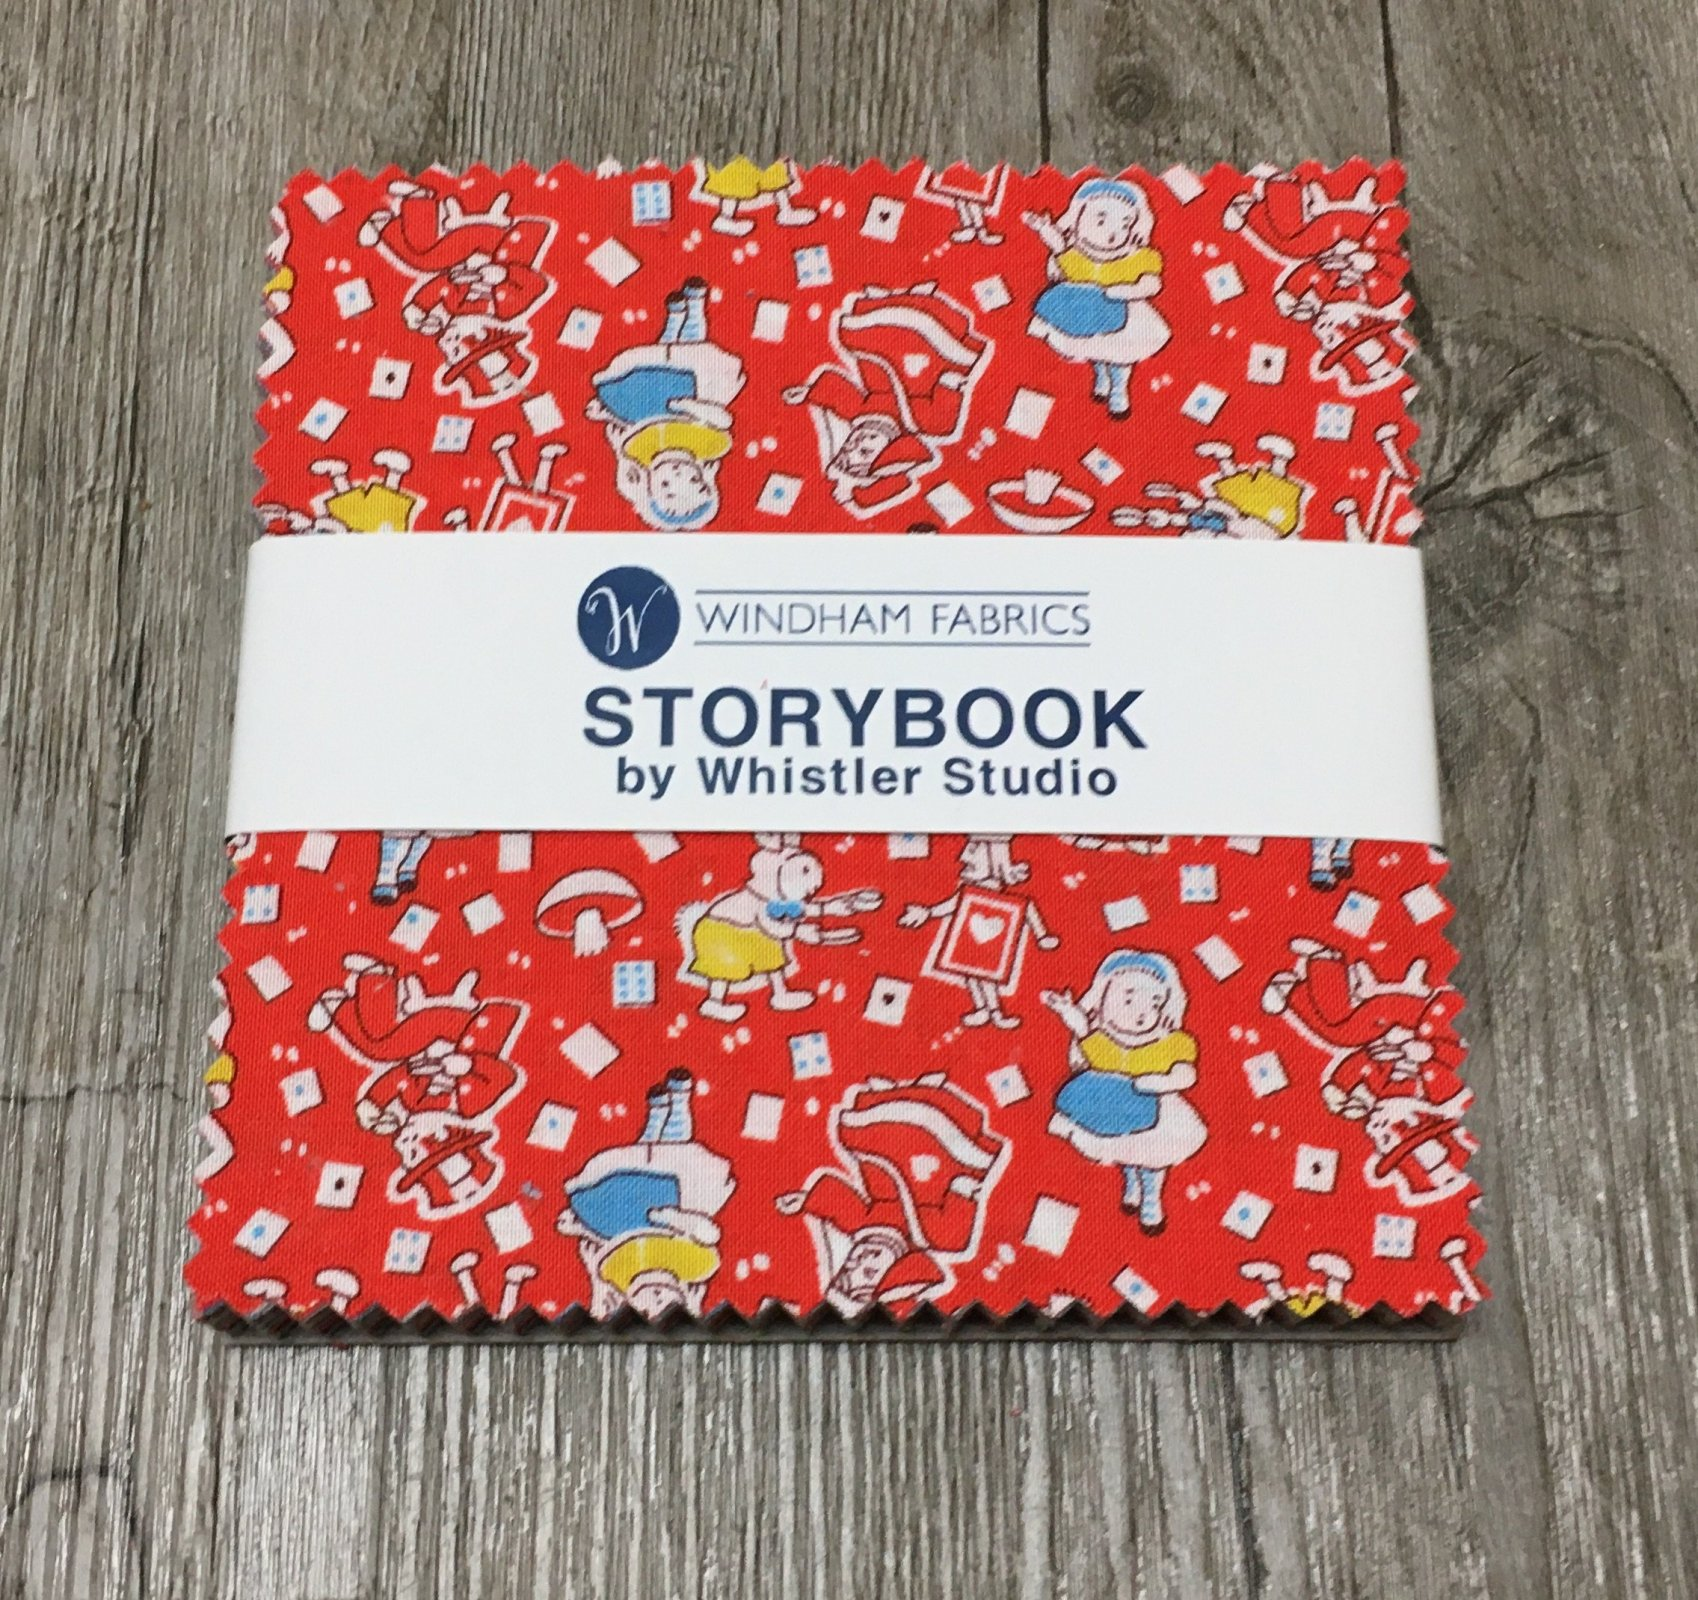 10 squares Storybook by Windham Fabrics